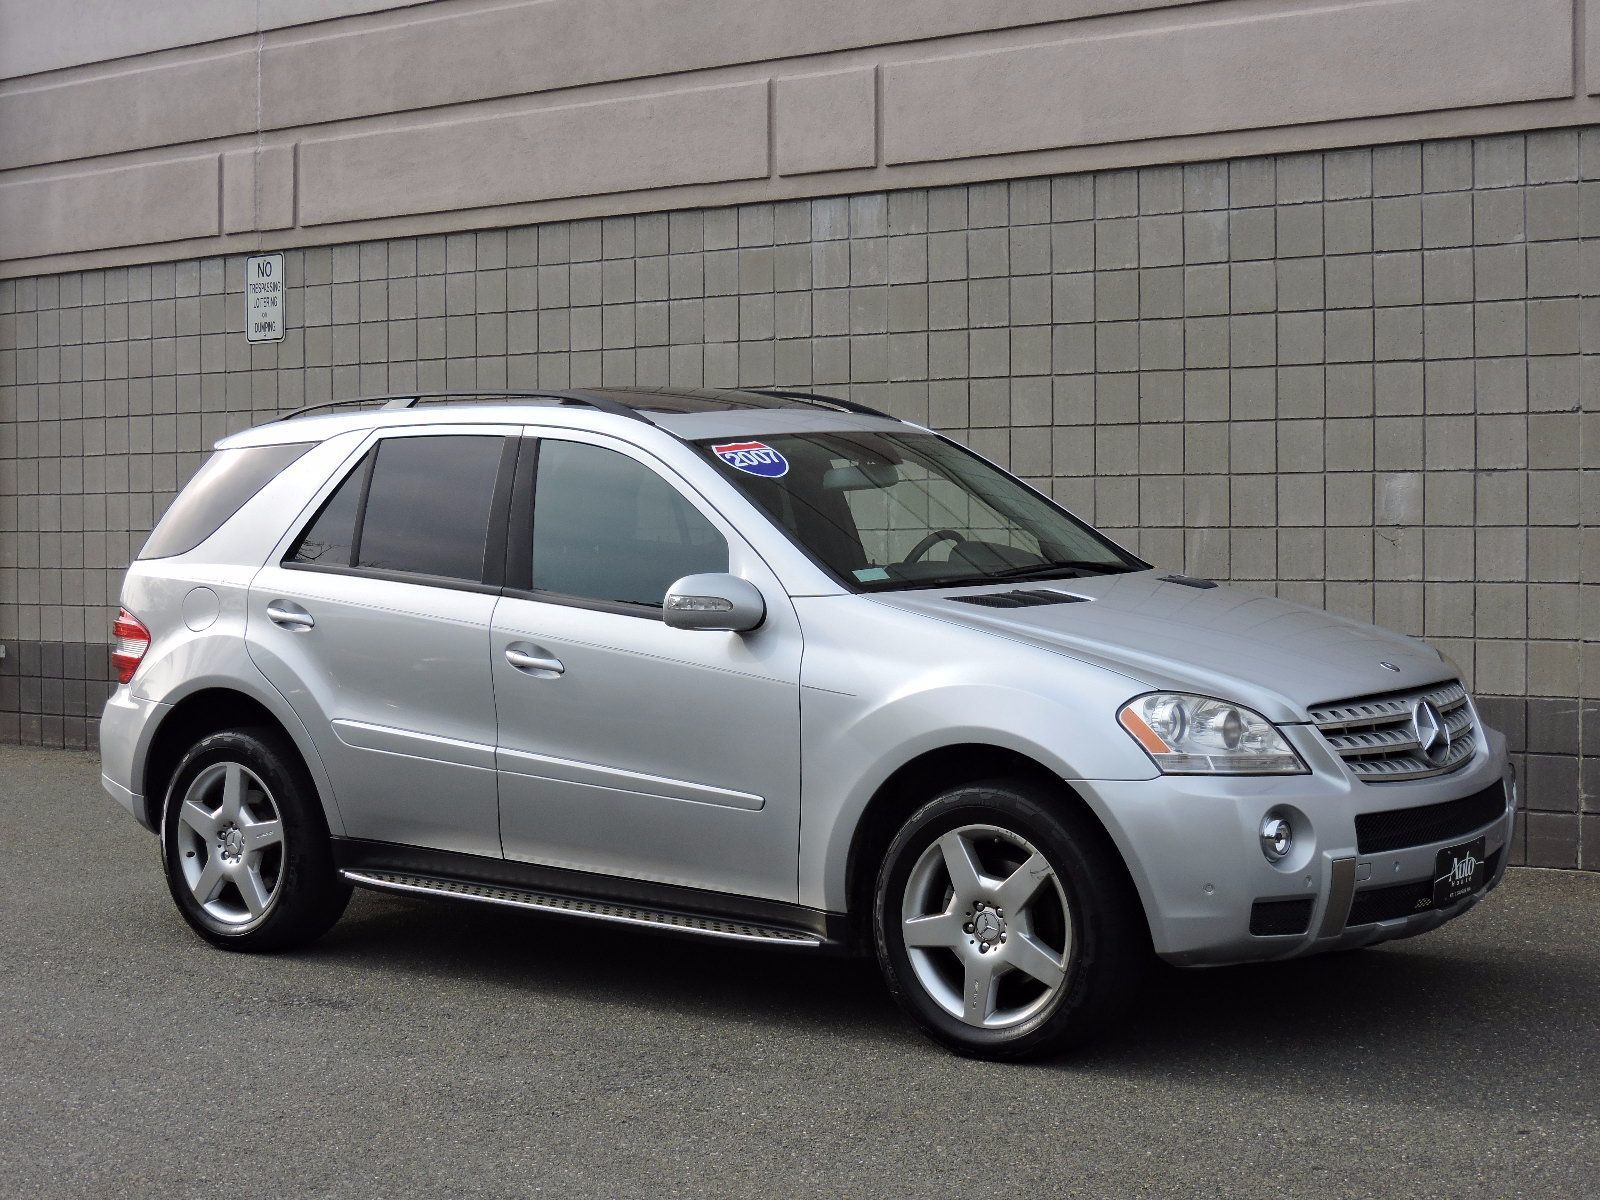 Used 2007 mercedes benz ml350 3 5l at auto house usa saugus for Mercedes benz ml 350 2007